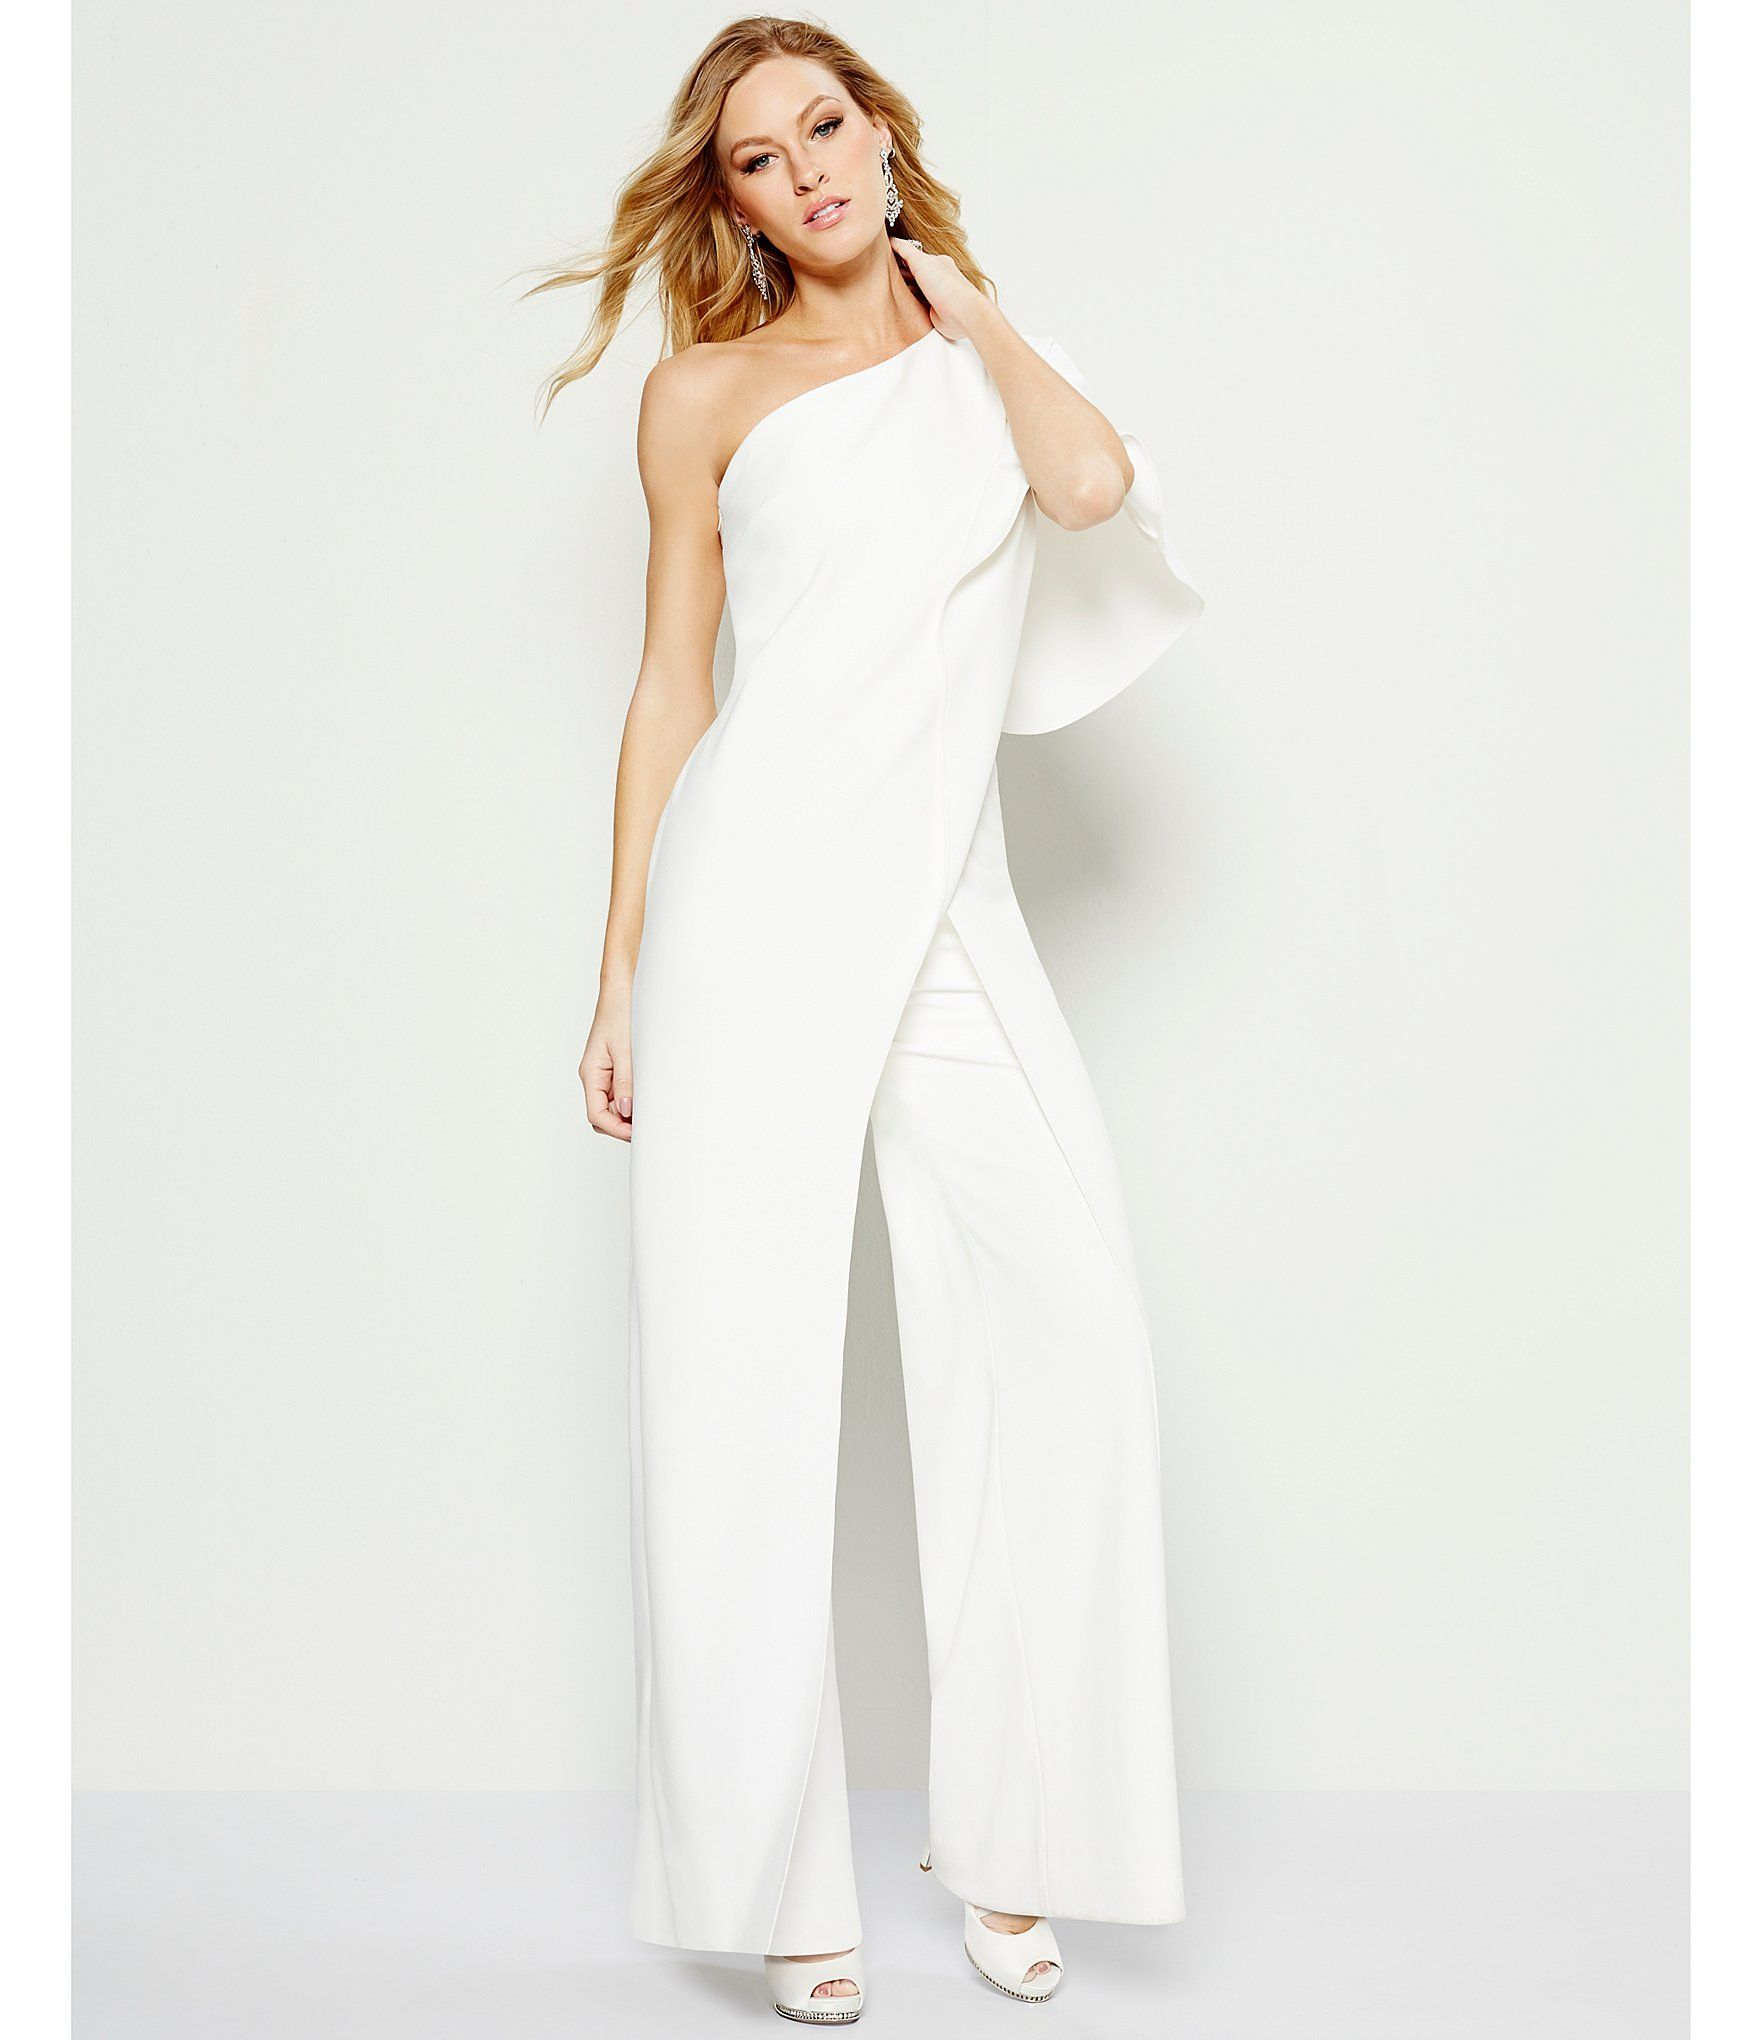 76516c9a9c9 Shop for Adrianna Papell Crepe One Shoulder Jumpsuit at Dillards.com. Visit  Dillards.com to find clothing